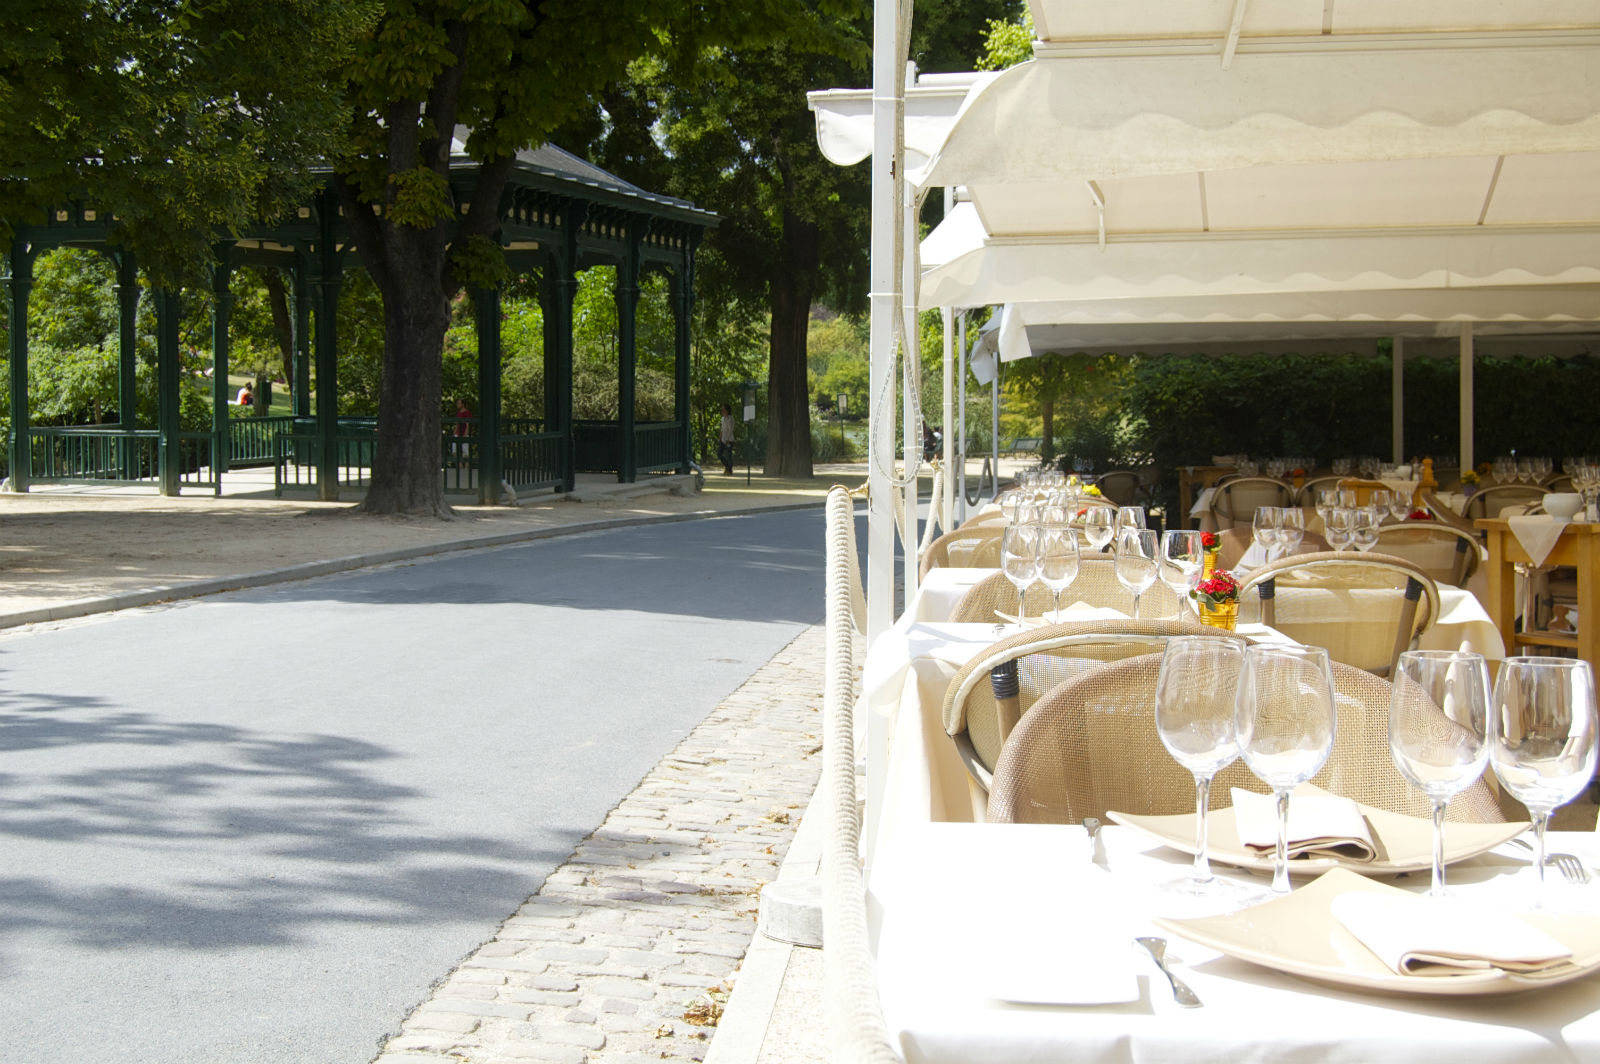 HiP Paris blog. Summer in Paris. Offbeat Romantic Itineraries in the City of Light- Parc Montsouris